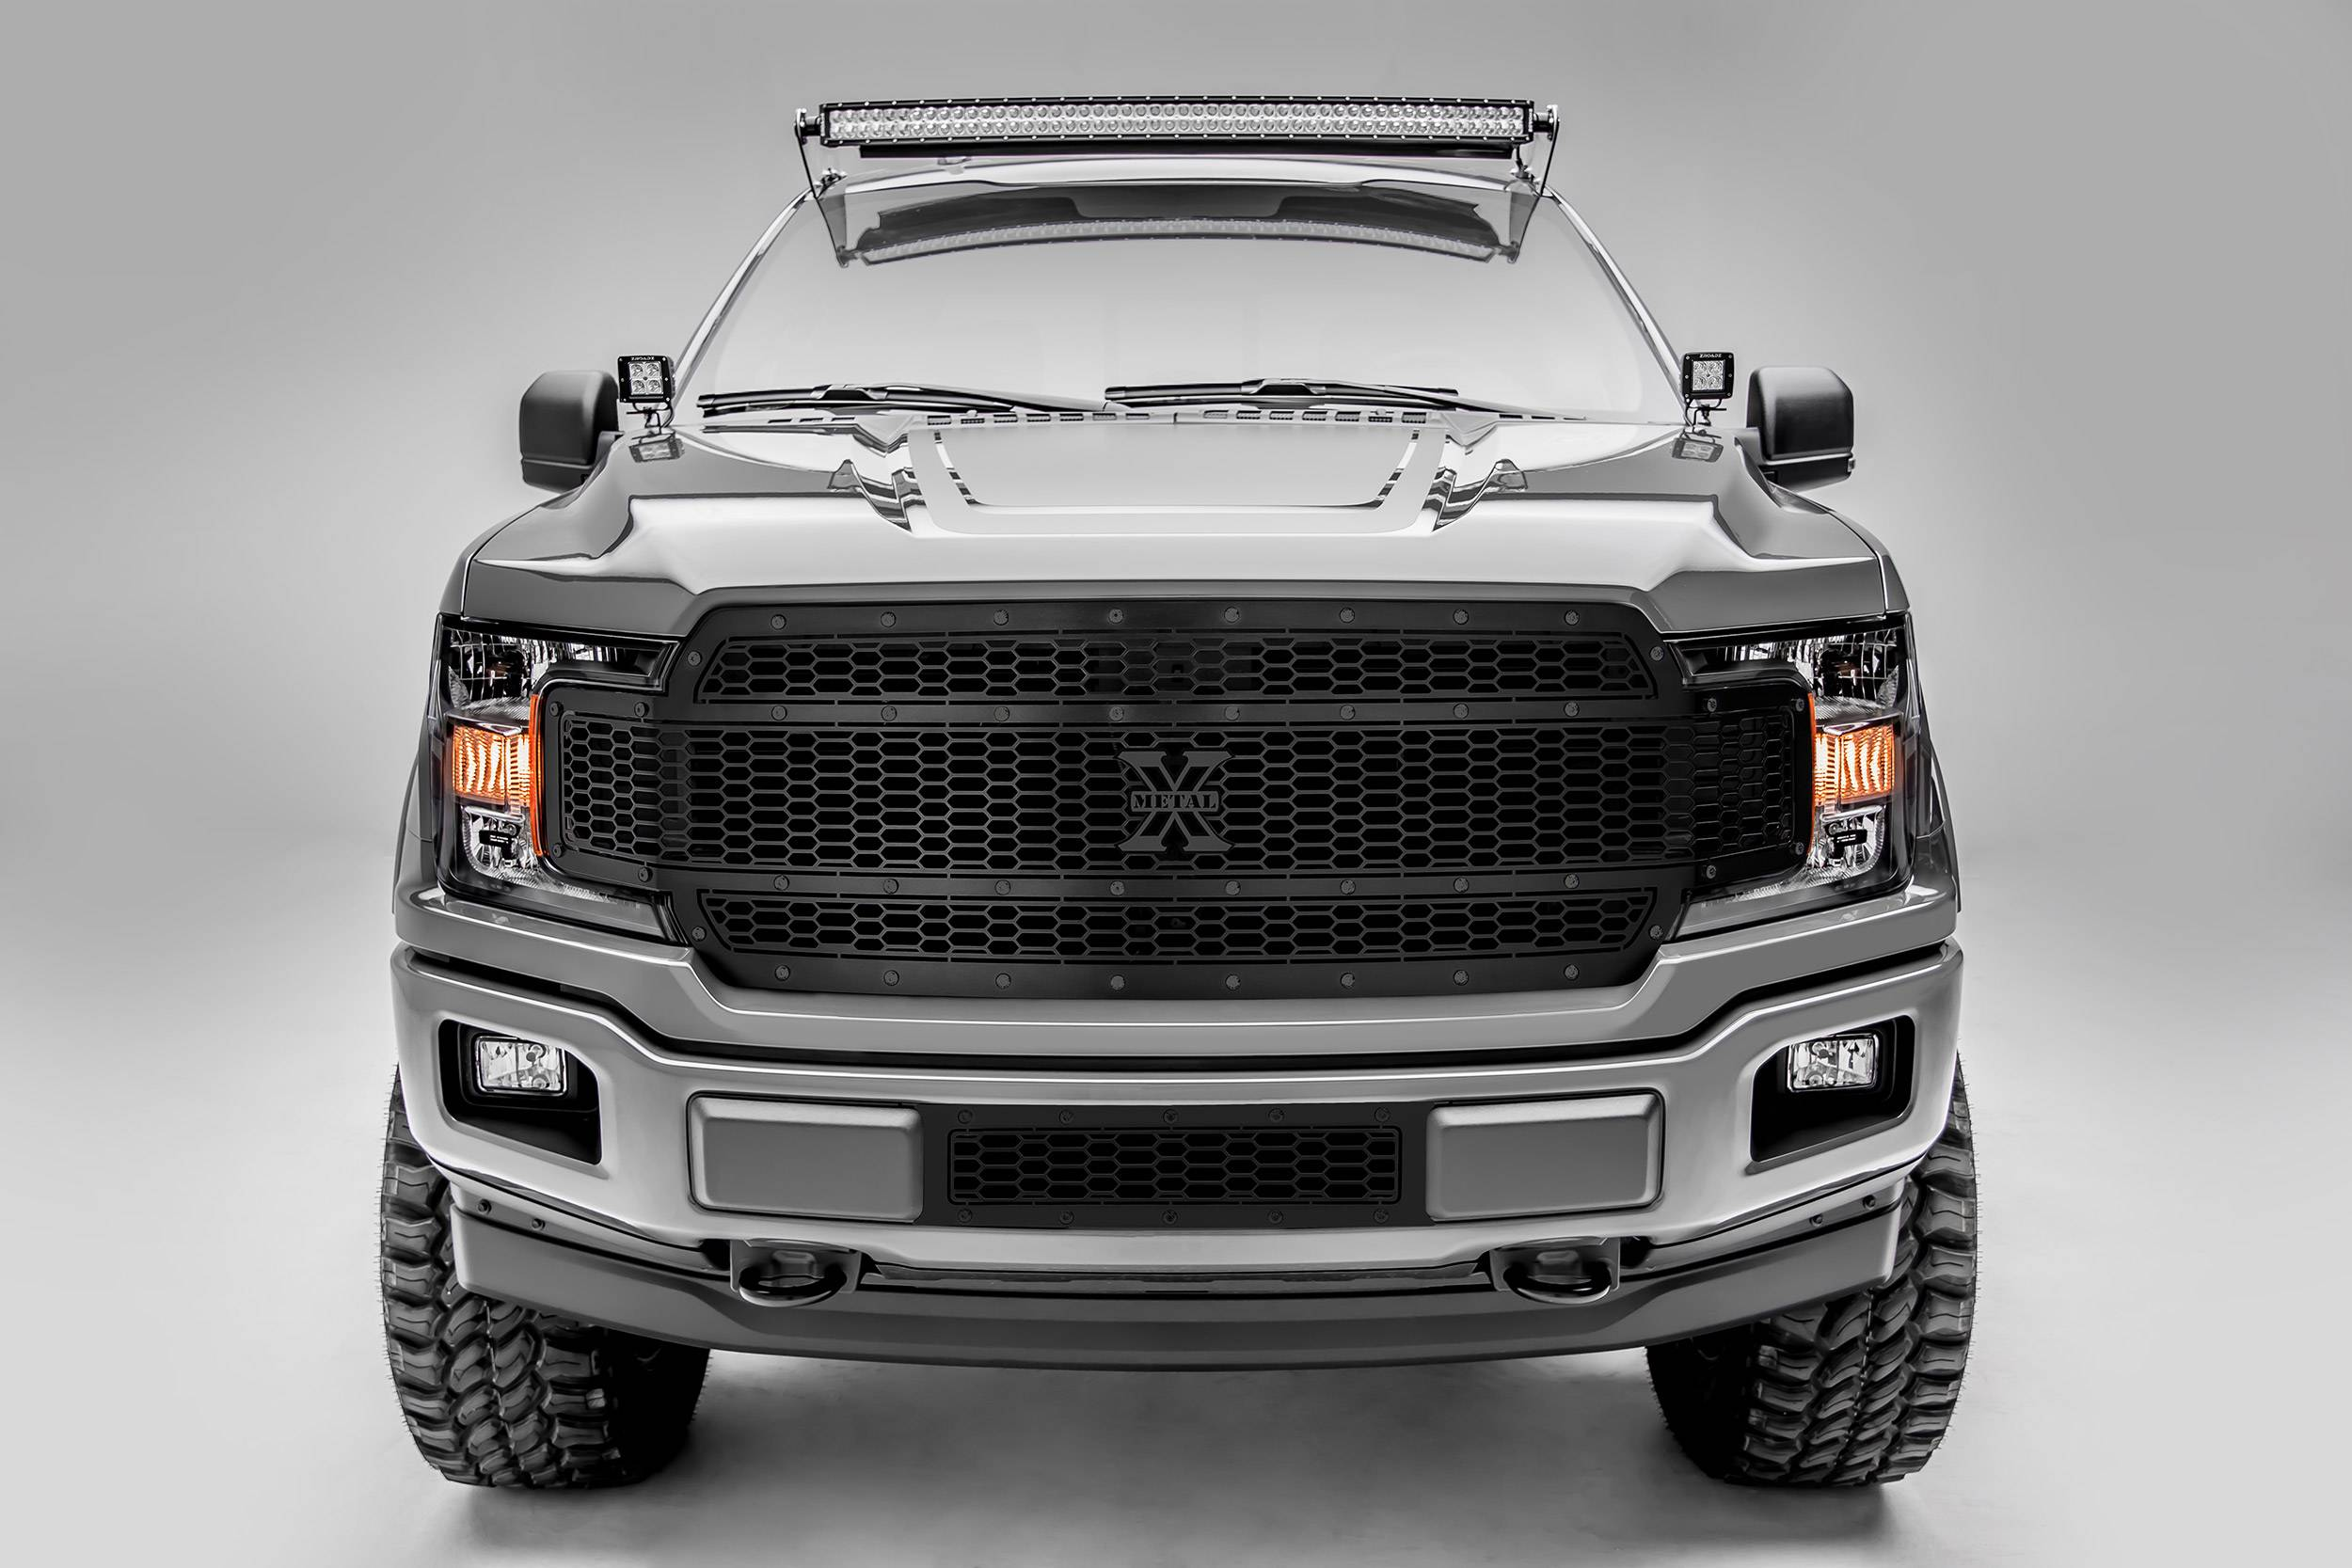 T-REX Grilles - 2018-2020 F-150 Stealth Laser X Grille, Black, 1 Pc, Replacement, Black Studs, Does Not Fit Vehicles with Camera - PN #7715841-BR